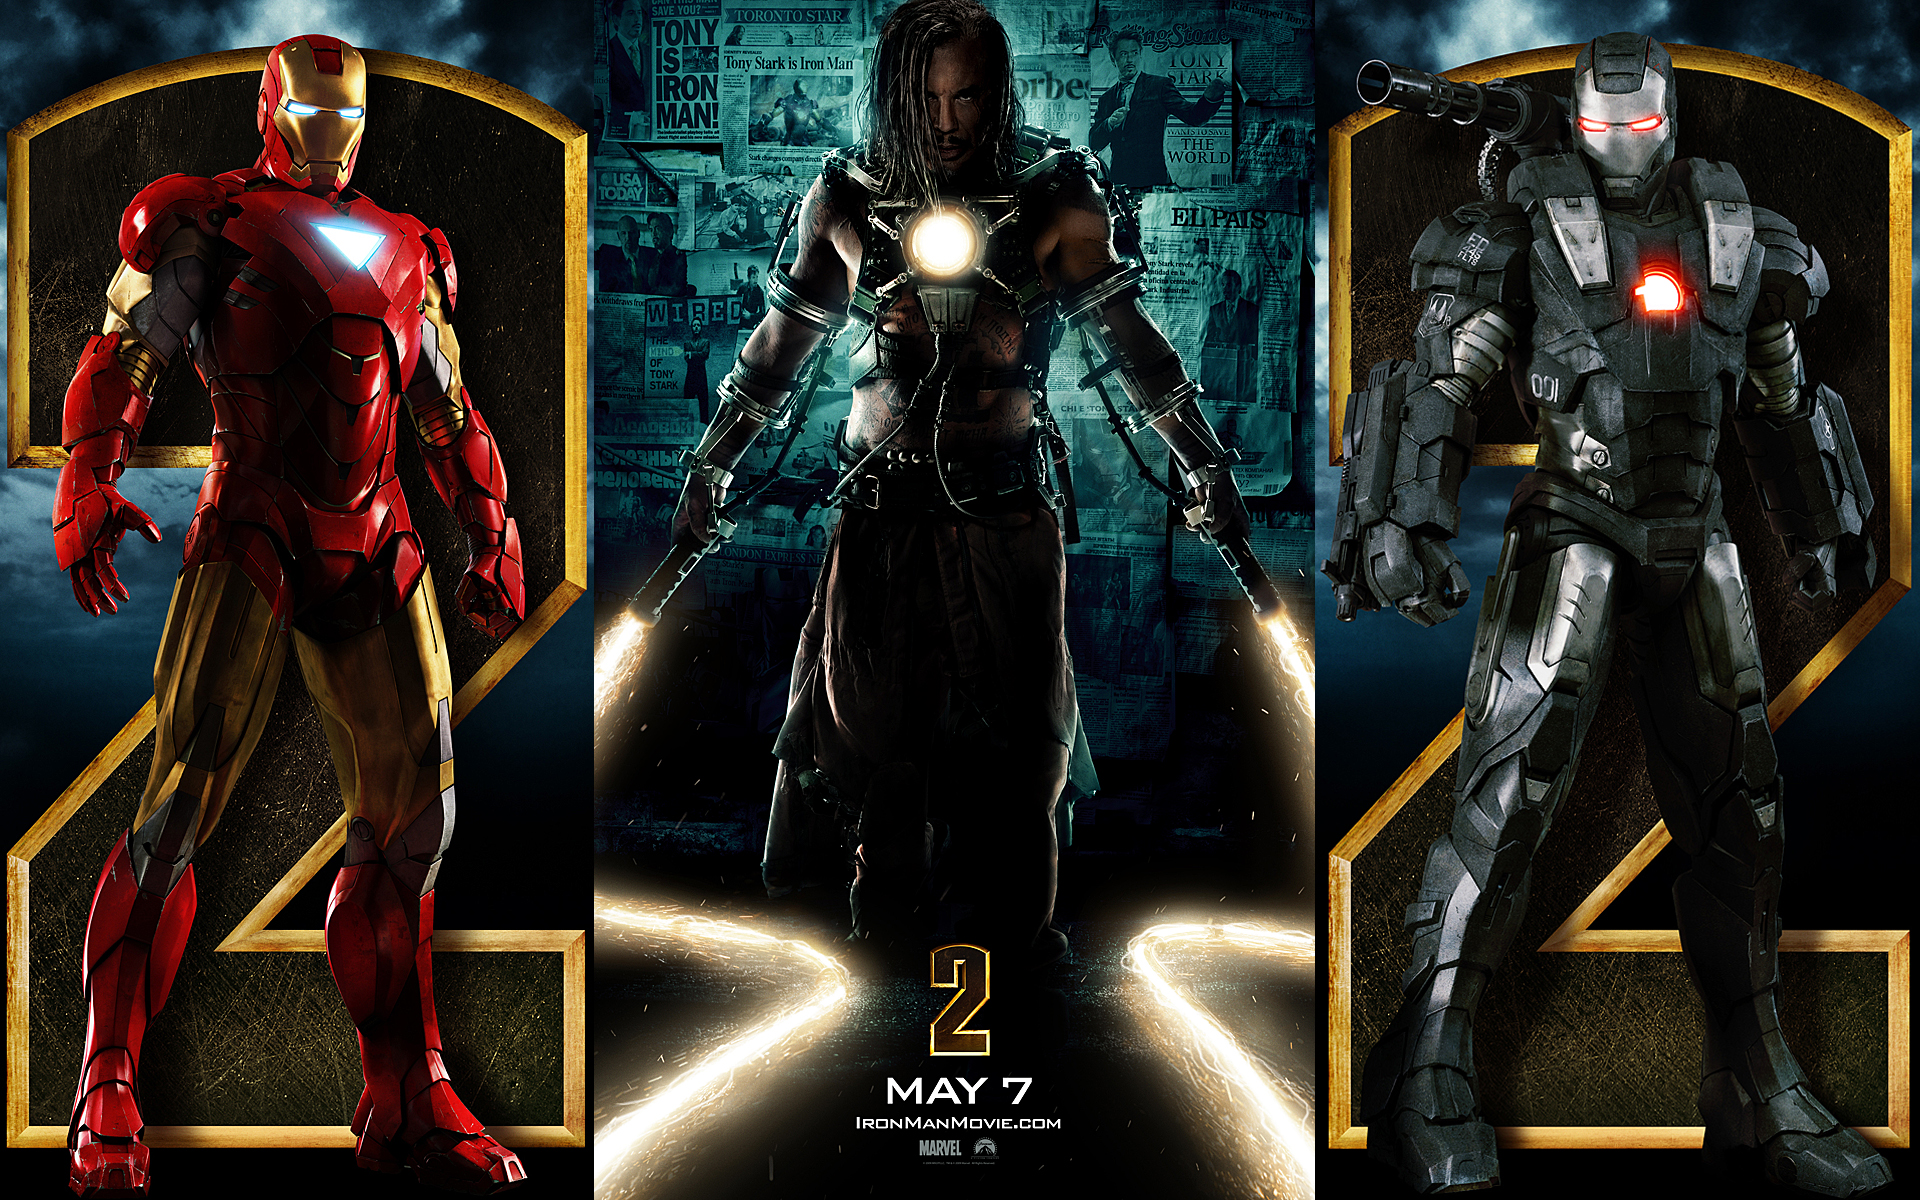 Iron Man 2 Wallpaper wallpaper Iron Man 2 Wallpaper hd wallpaper 1920x1200